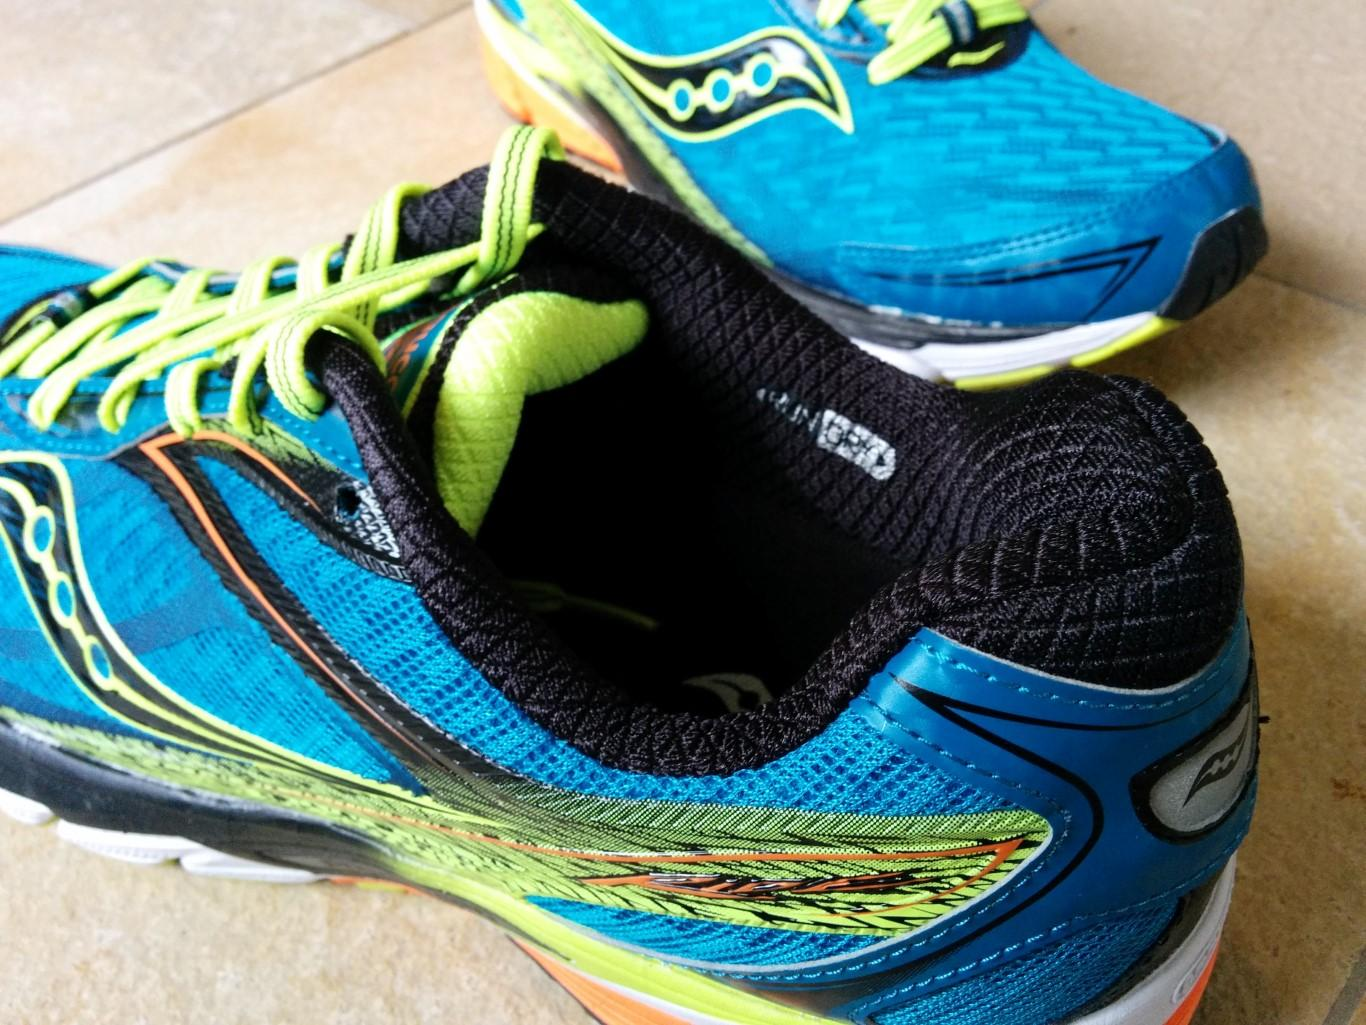 Saucony Mirage 4 Damen Test